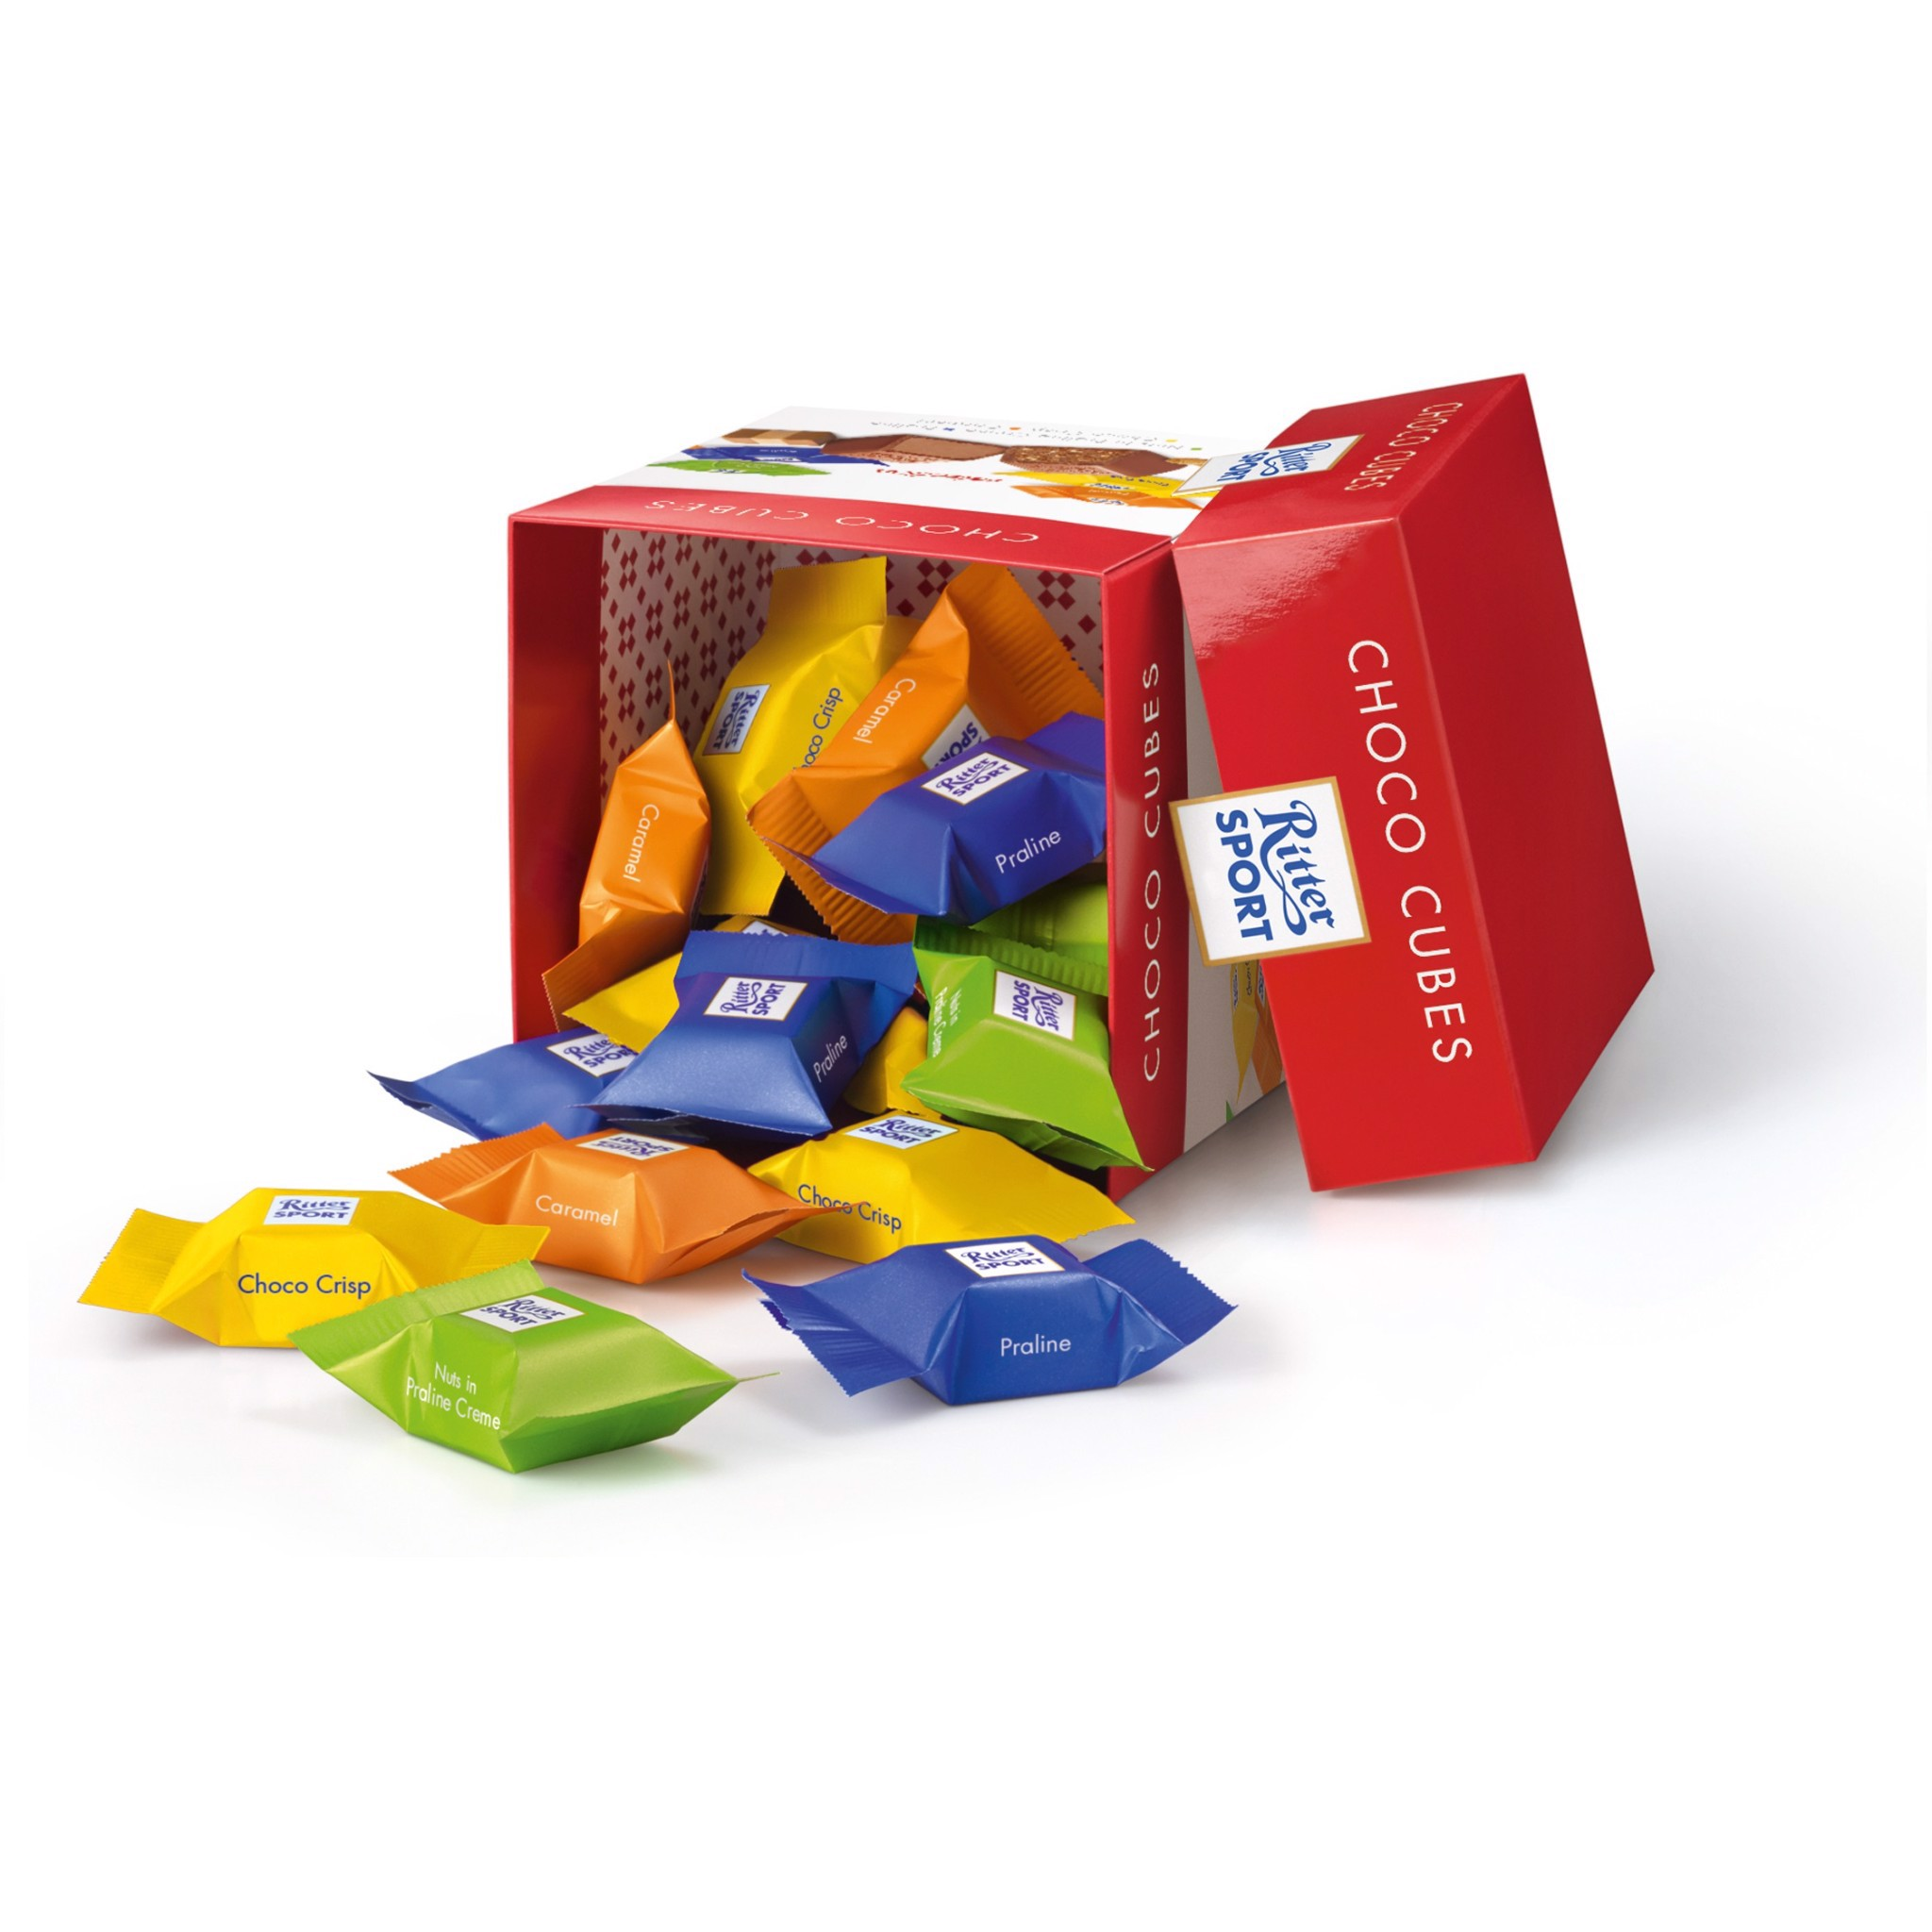 Chocolate Ritter Sport Bunter Mix